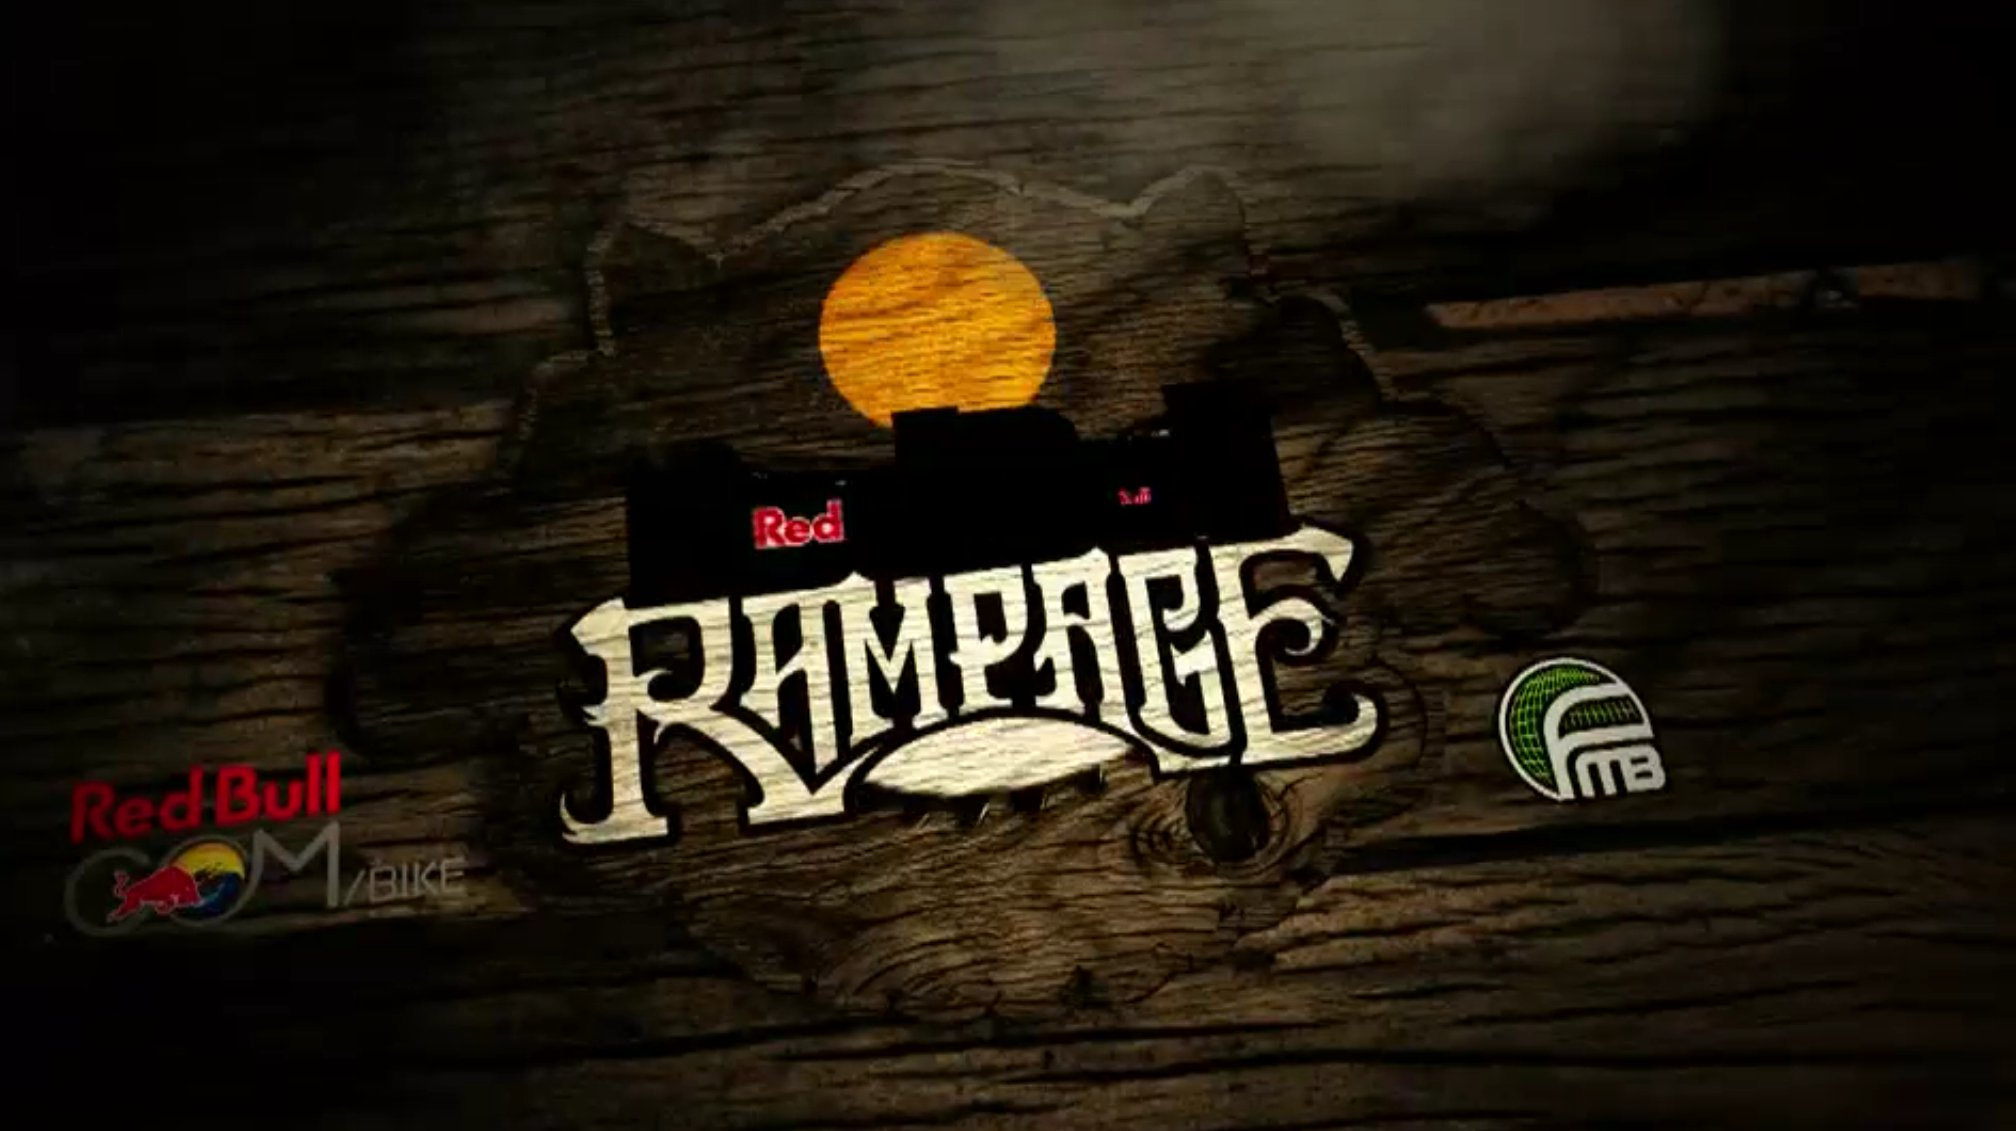 red_bull_rampage_2013